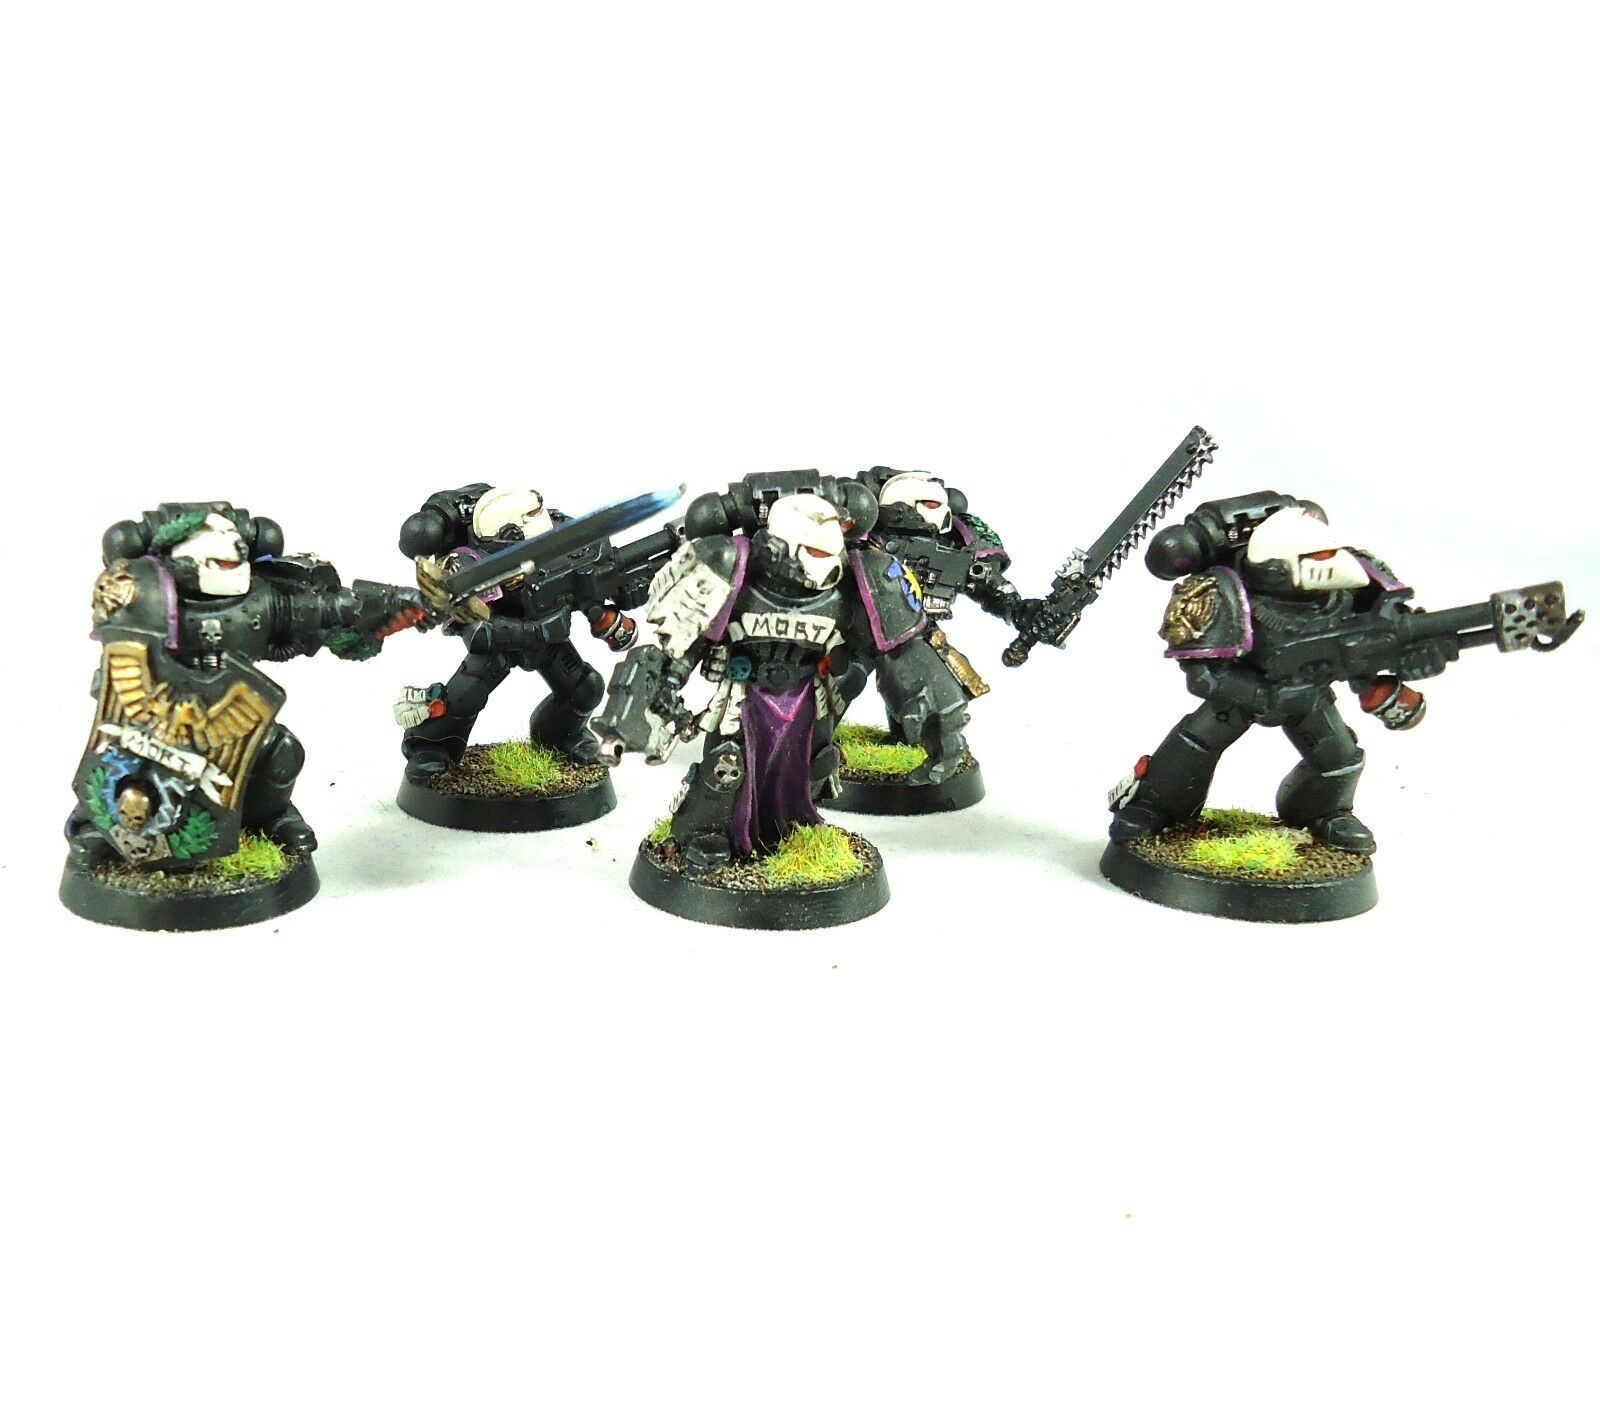 Warhammer 40k Space Marine Army 5 Man Squad Painted And Based